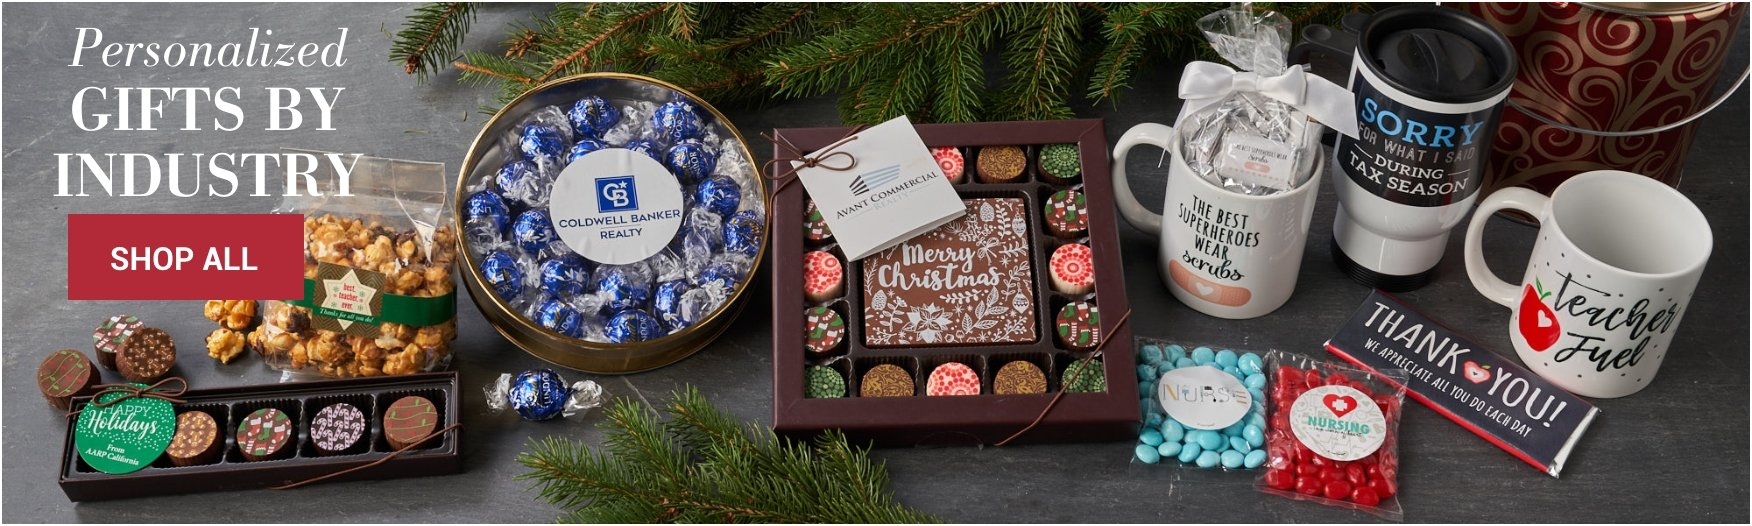 personalized gifts by industry